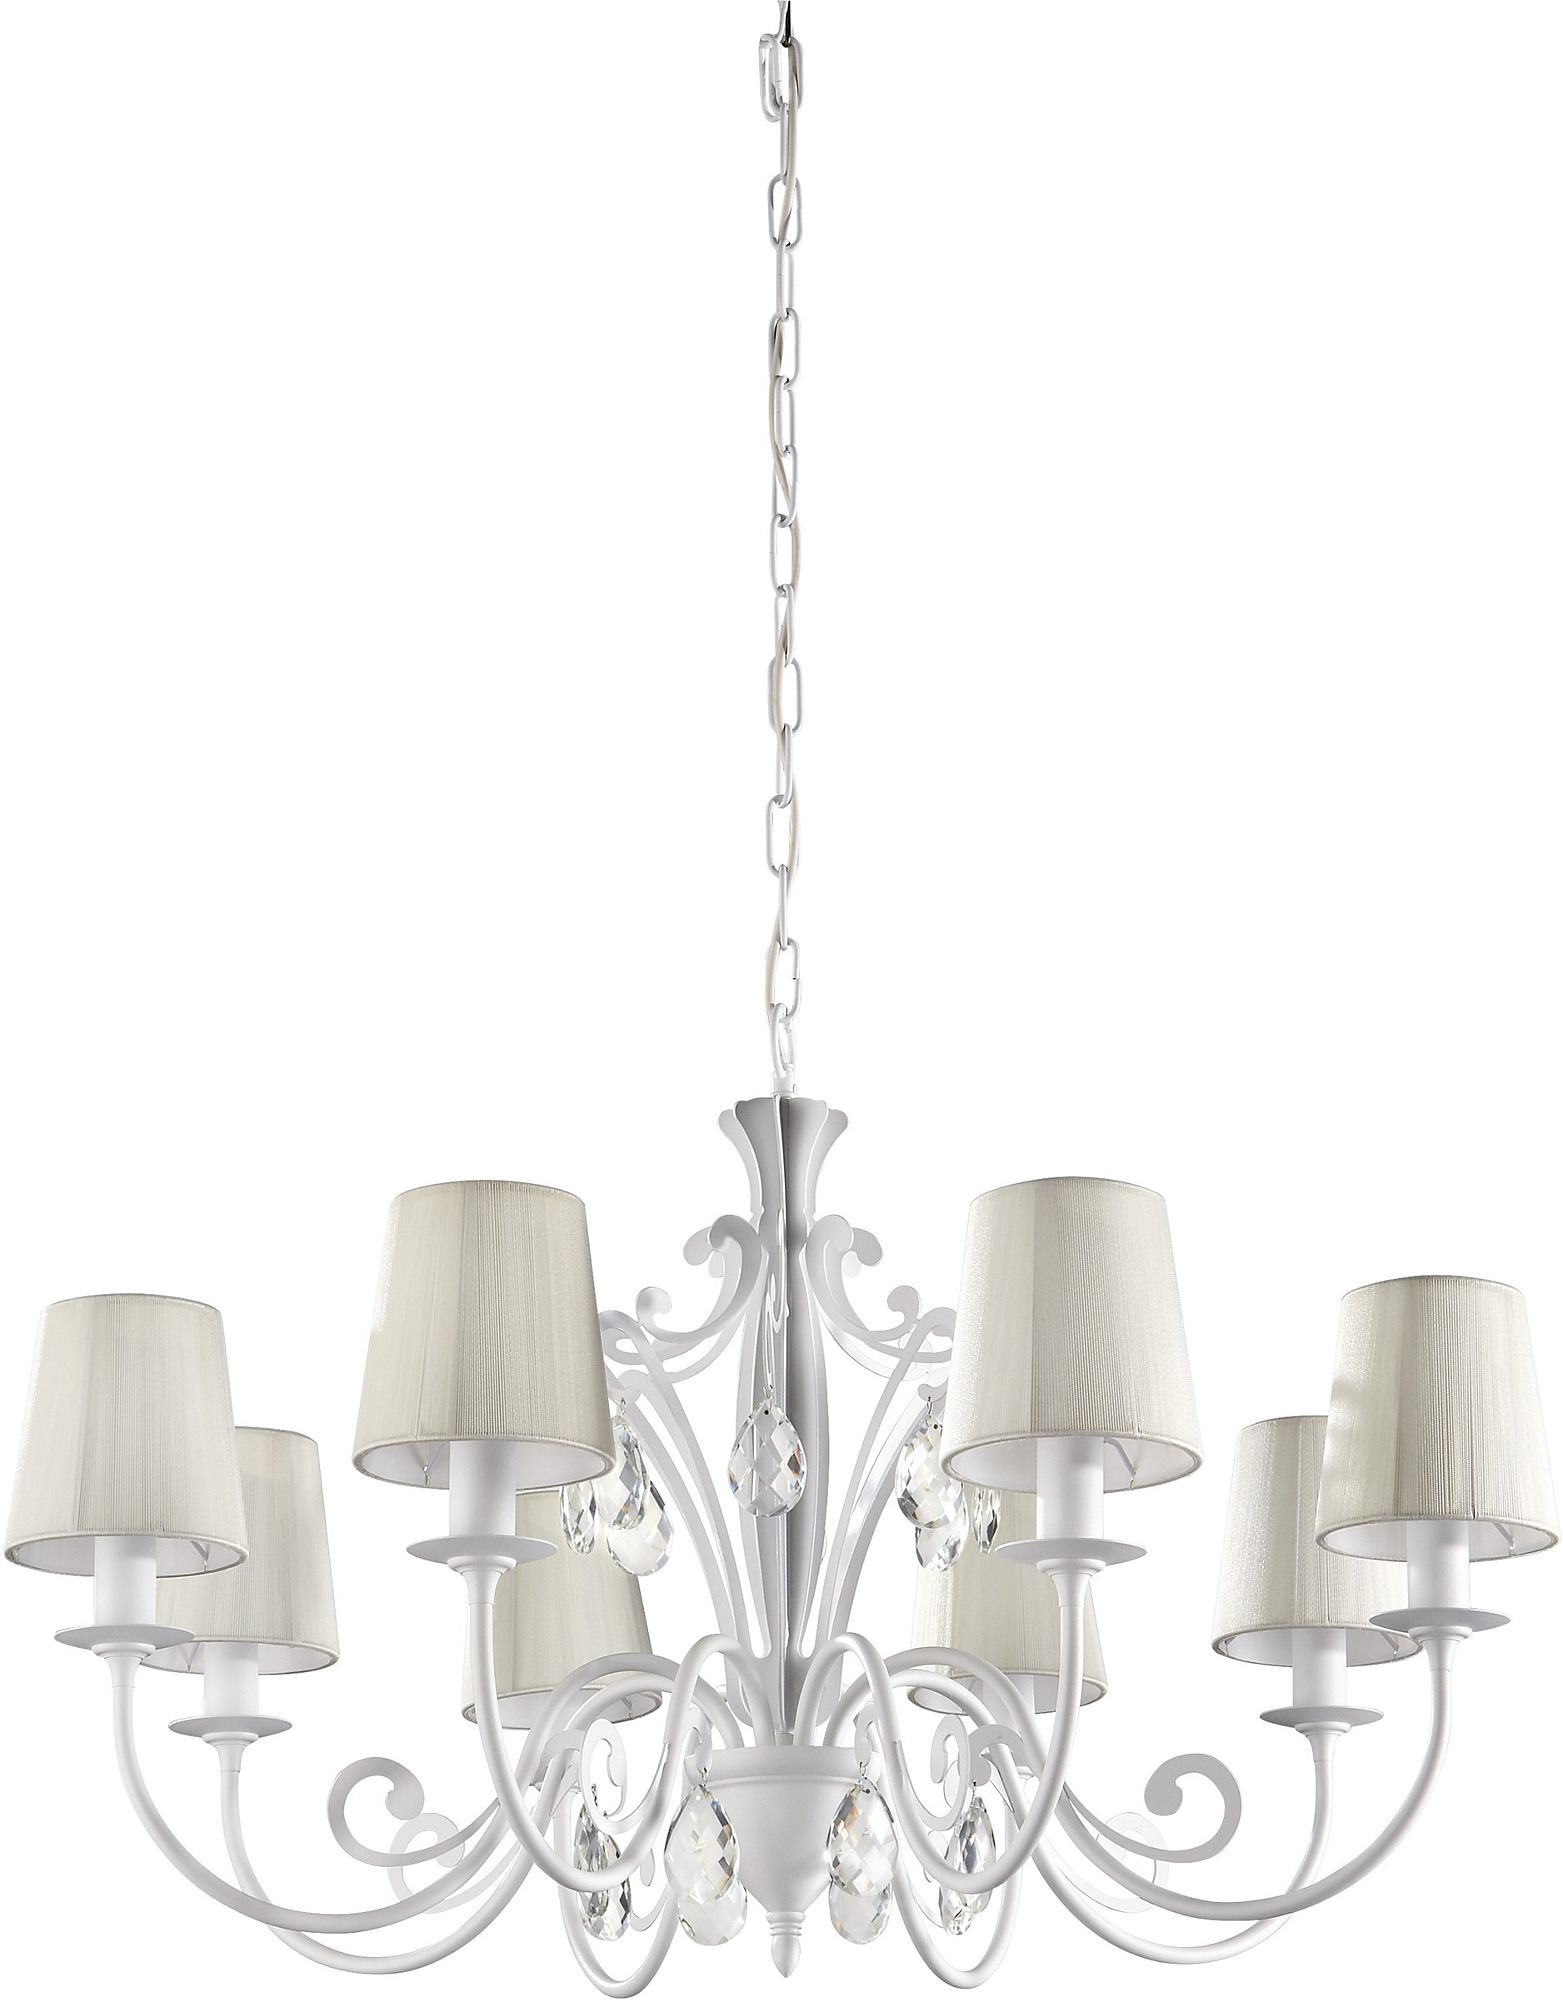 -Roomstylers 36681 White Pendant Crystal